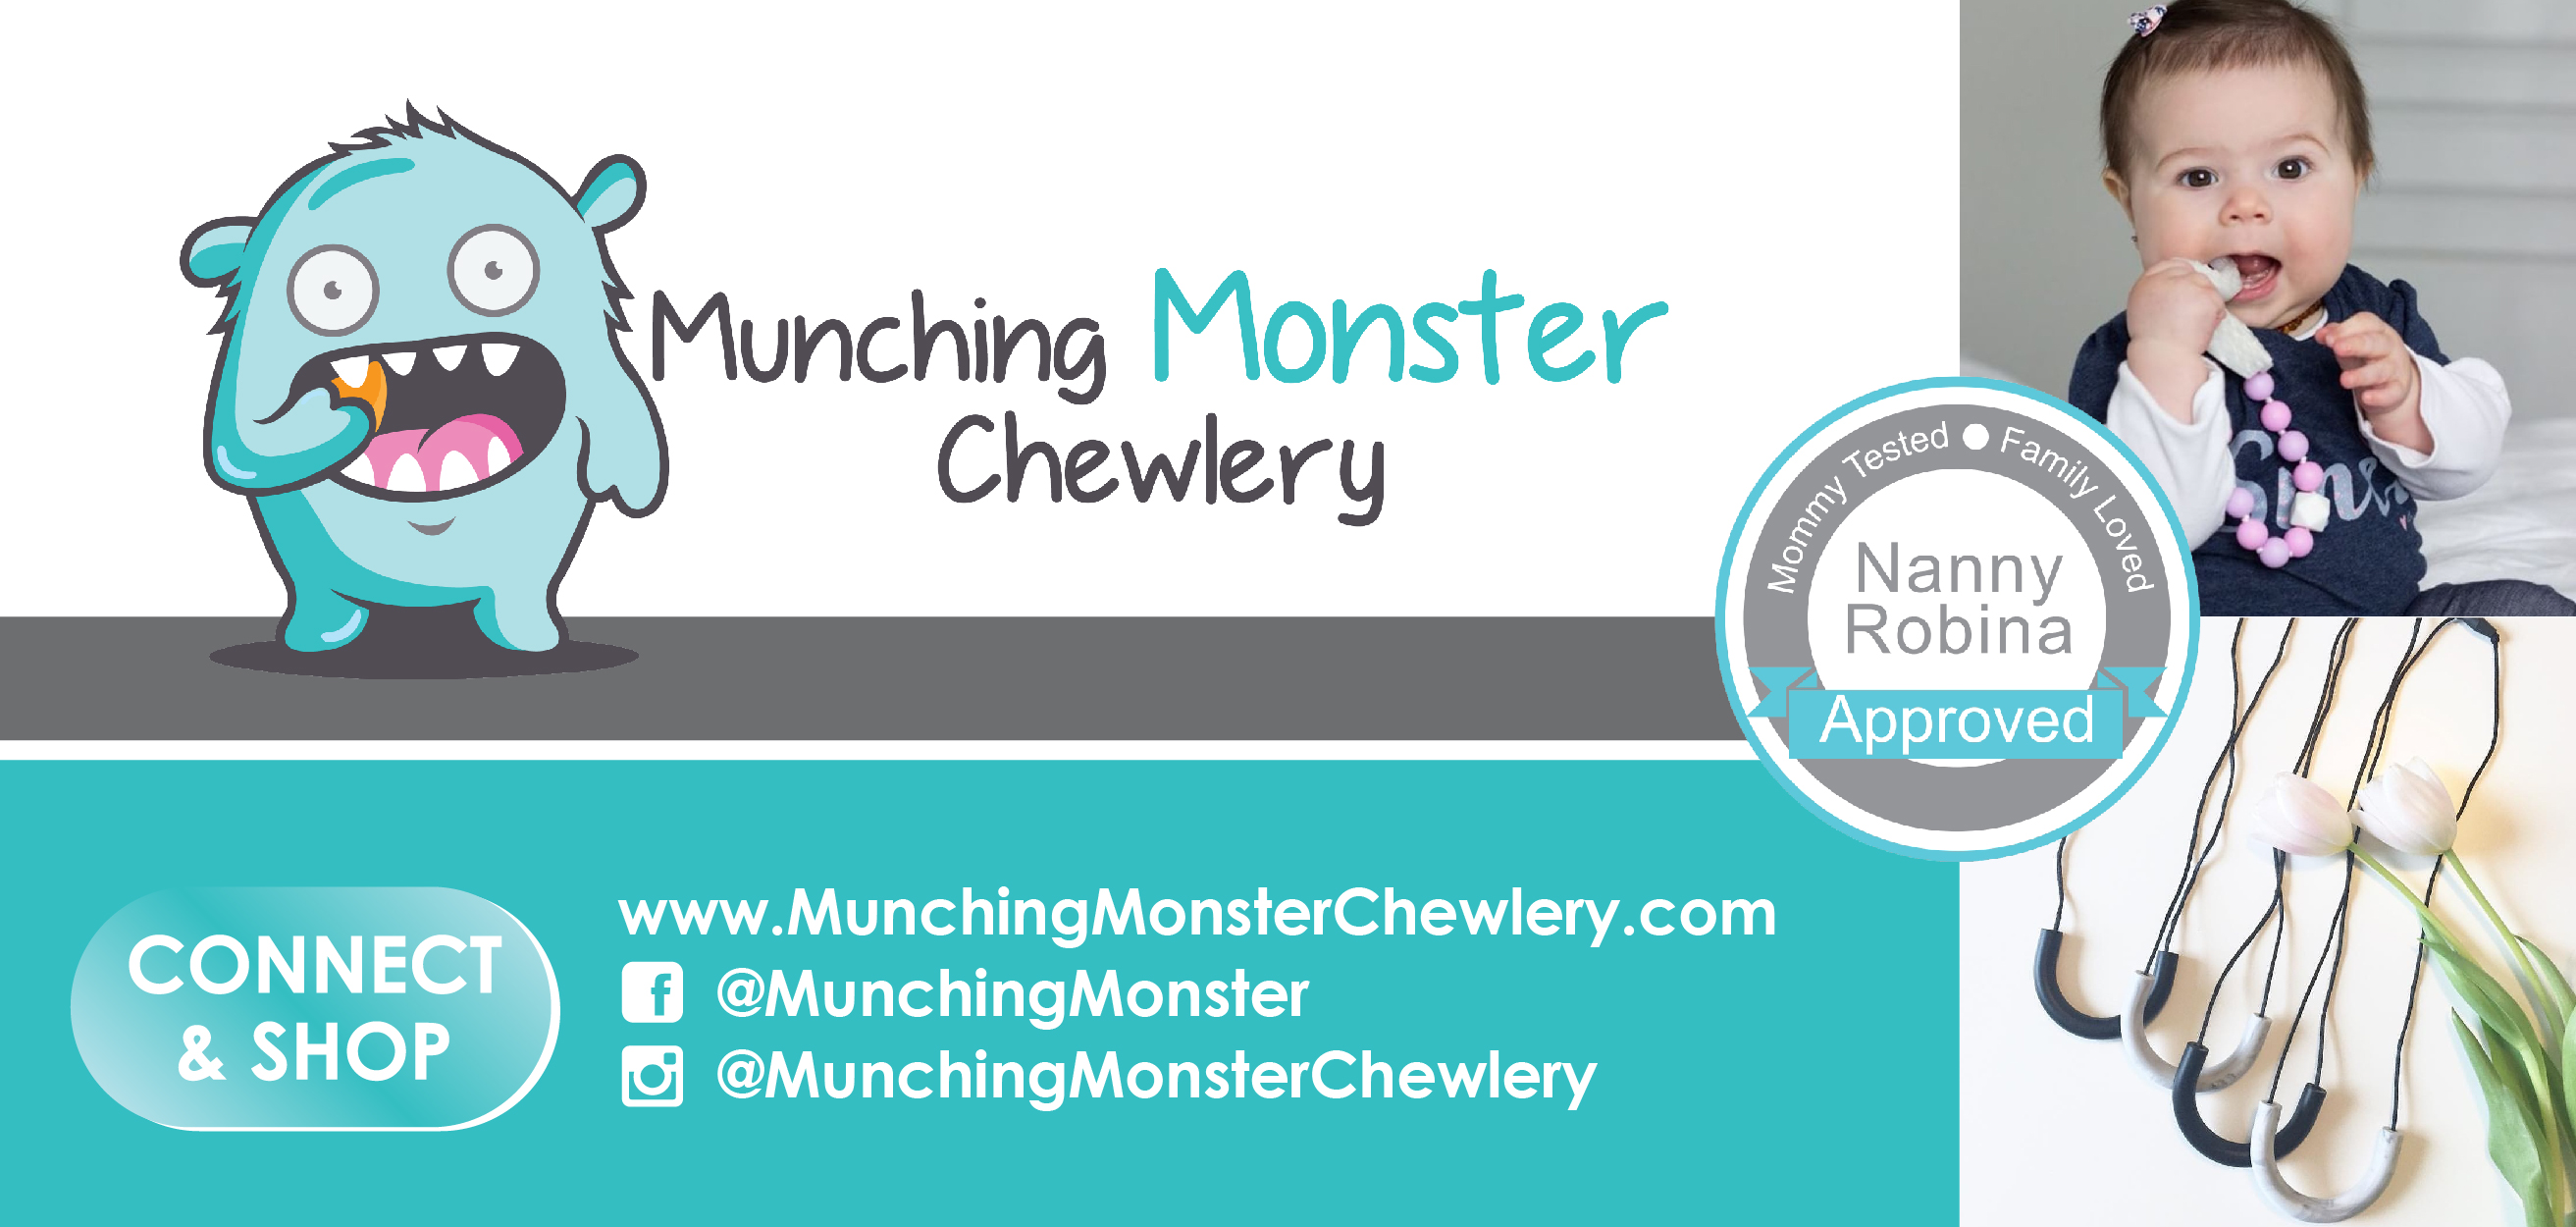 Munching Monster